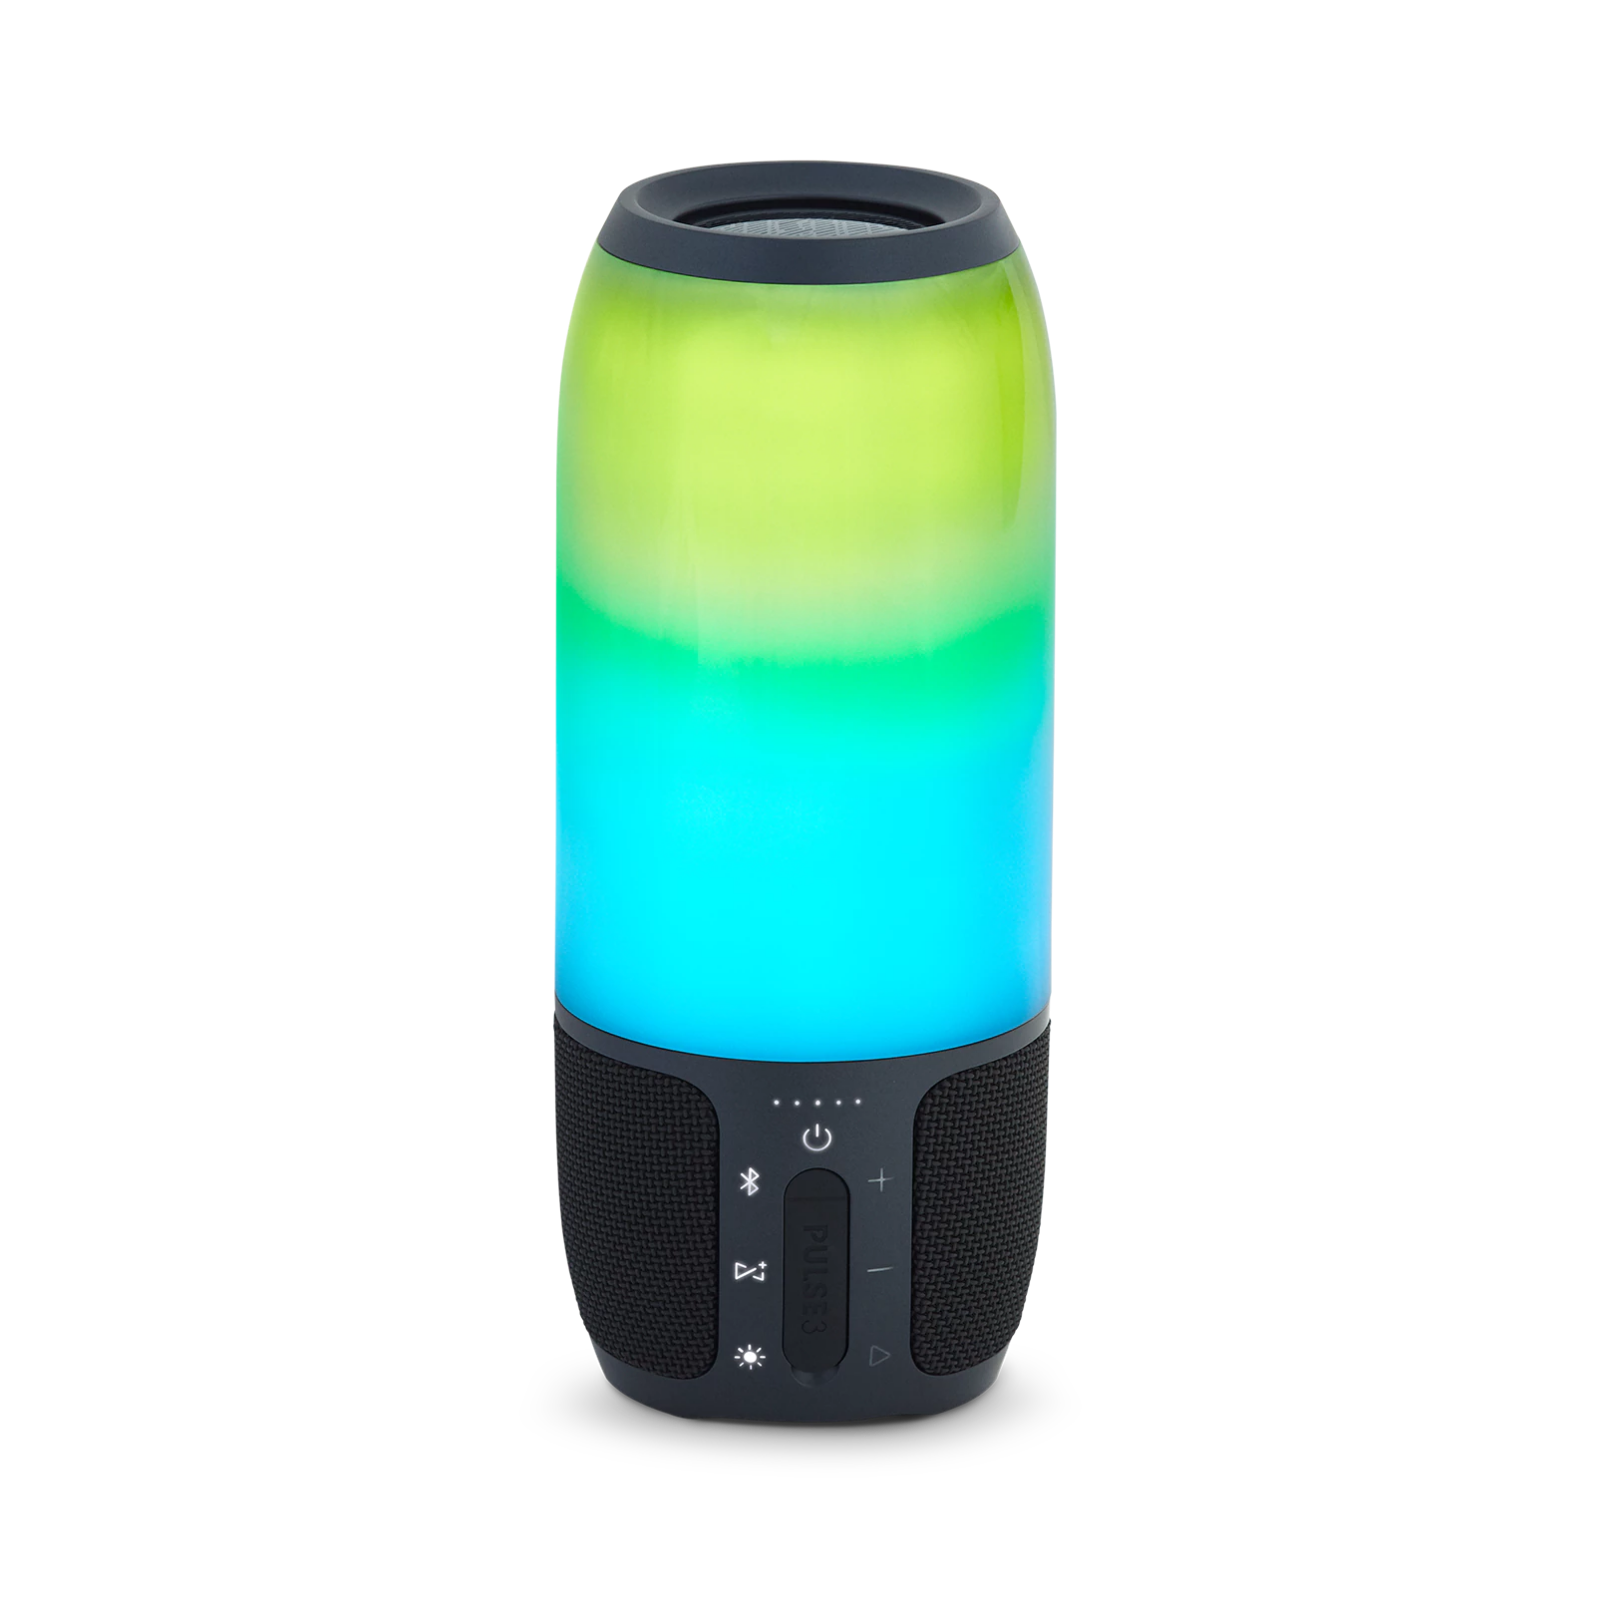 JBL Pulse 3 Waterproof Bluetooth Speaker with 360° Lightshow *Authorized Dealer* 4